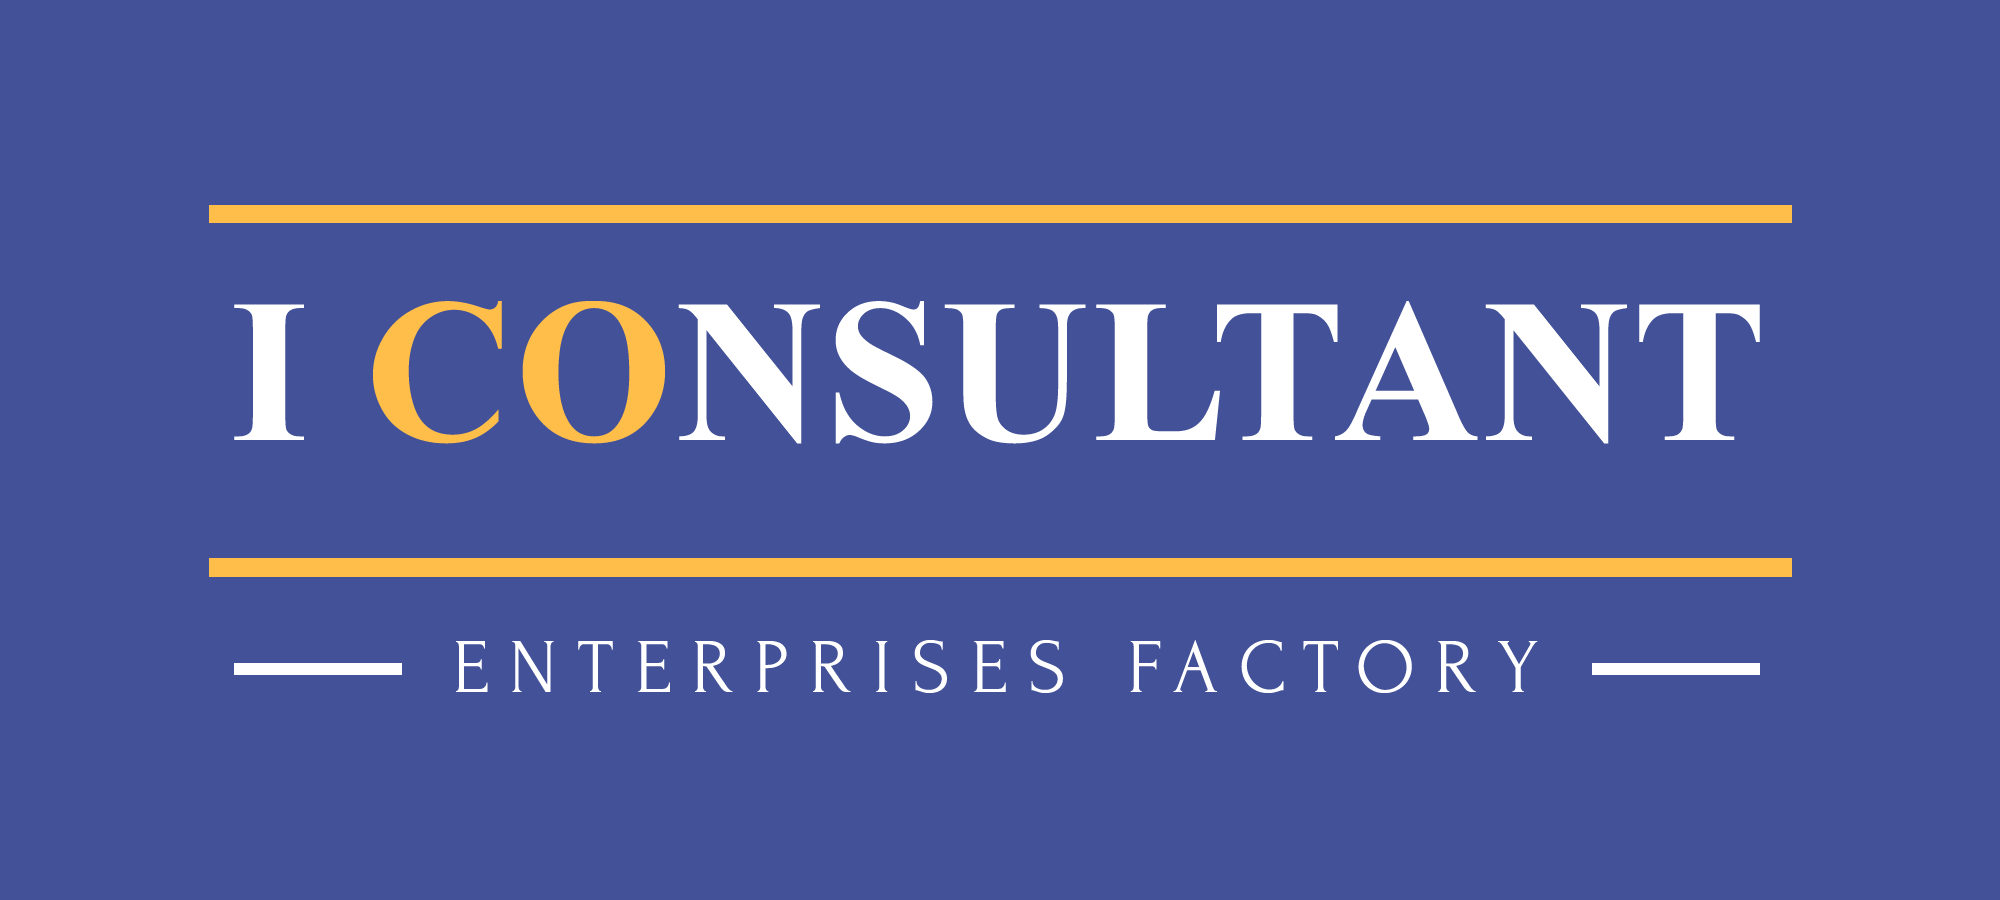 iconsultant enterprises-blu